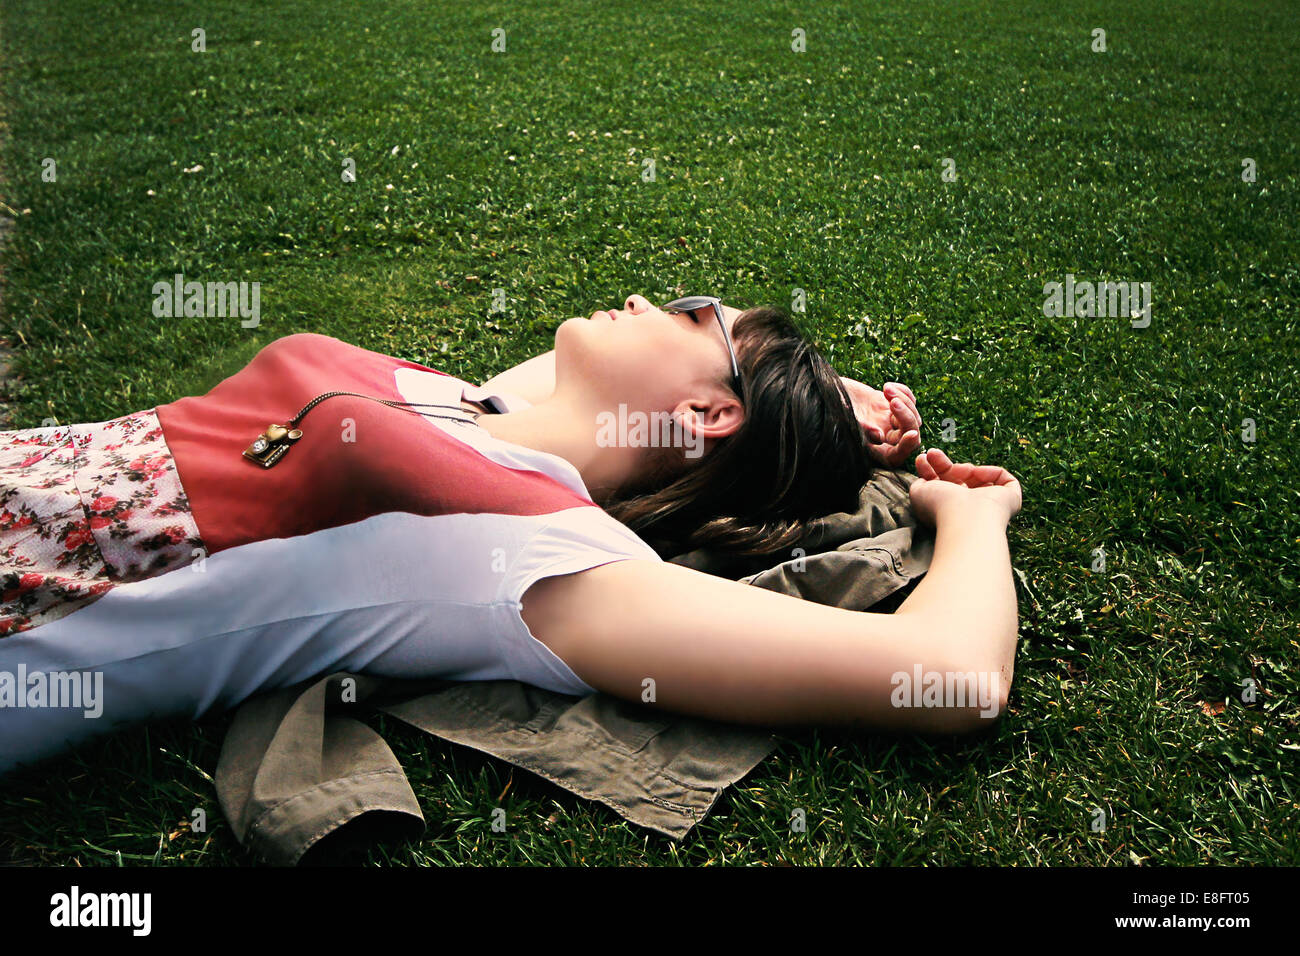 Détente woman lying on grass Photo Stock